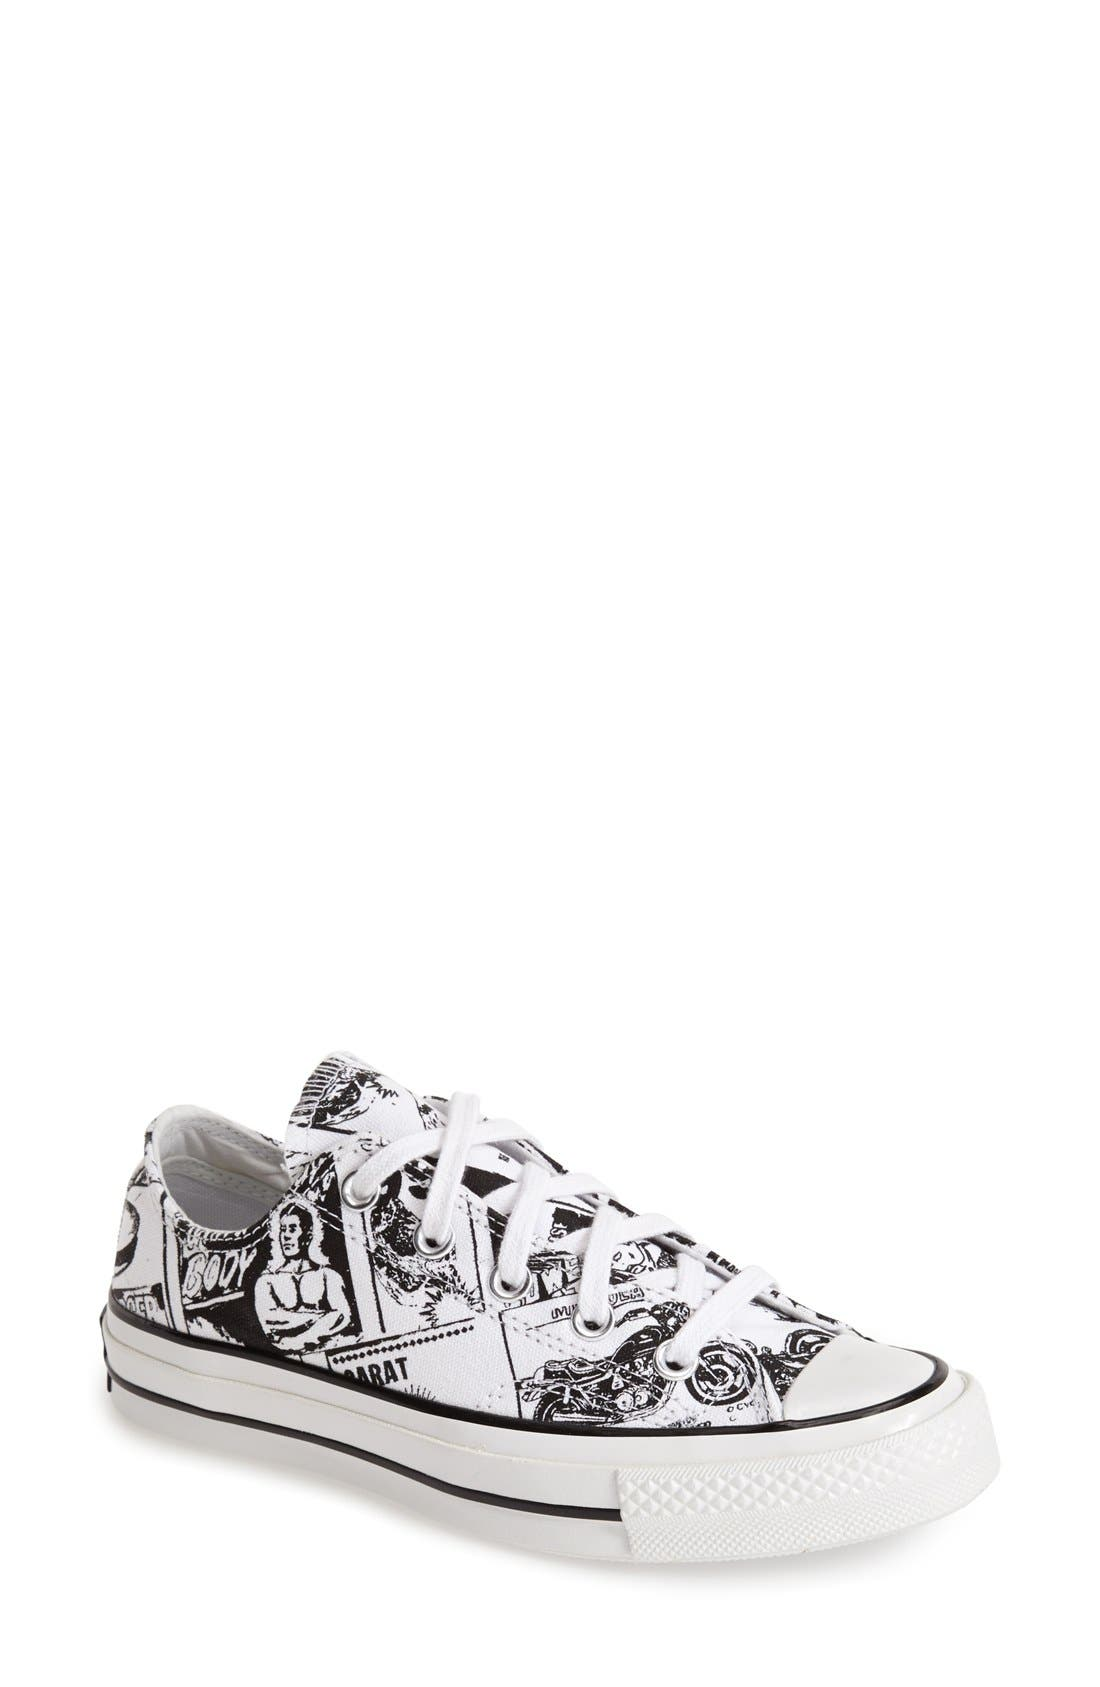 Alternate Image 1 Selected - Converse Chuck Taylor® All Star® '70 Andy Warhol Collection Sneaker (Women)